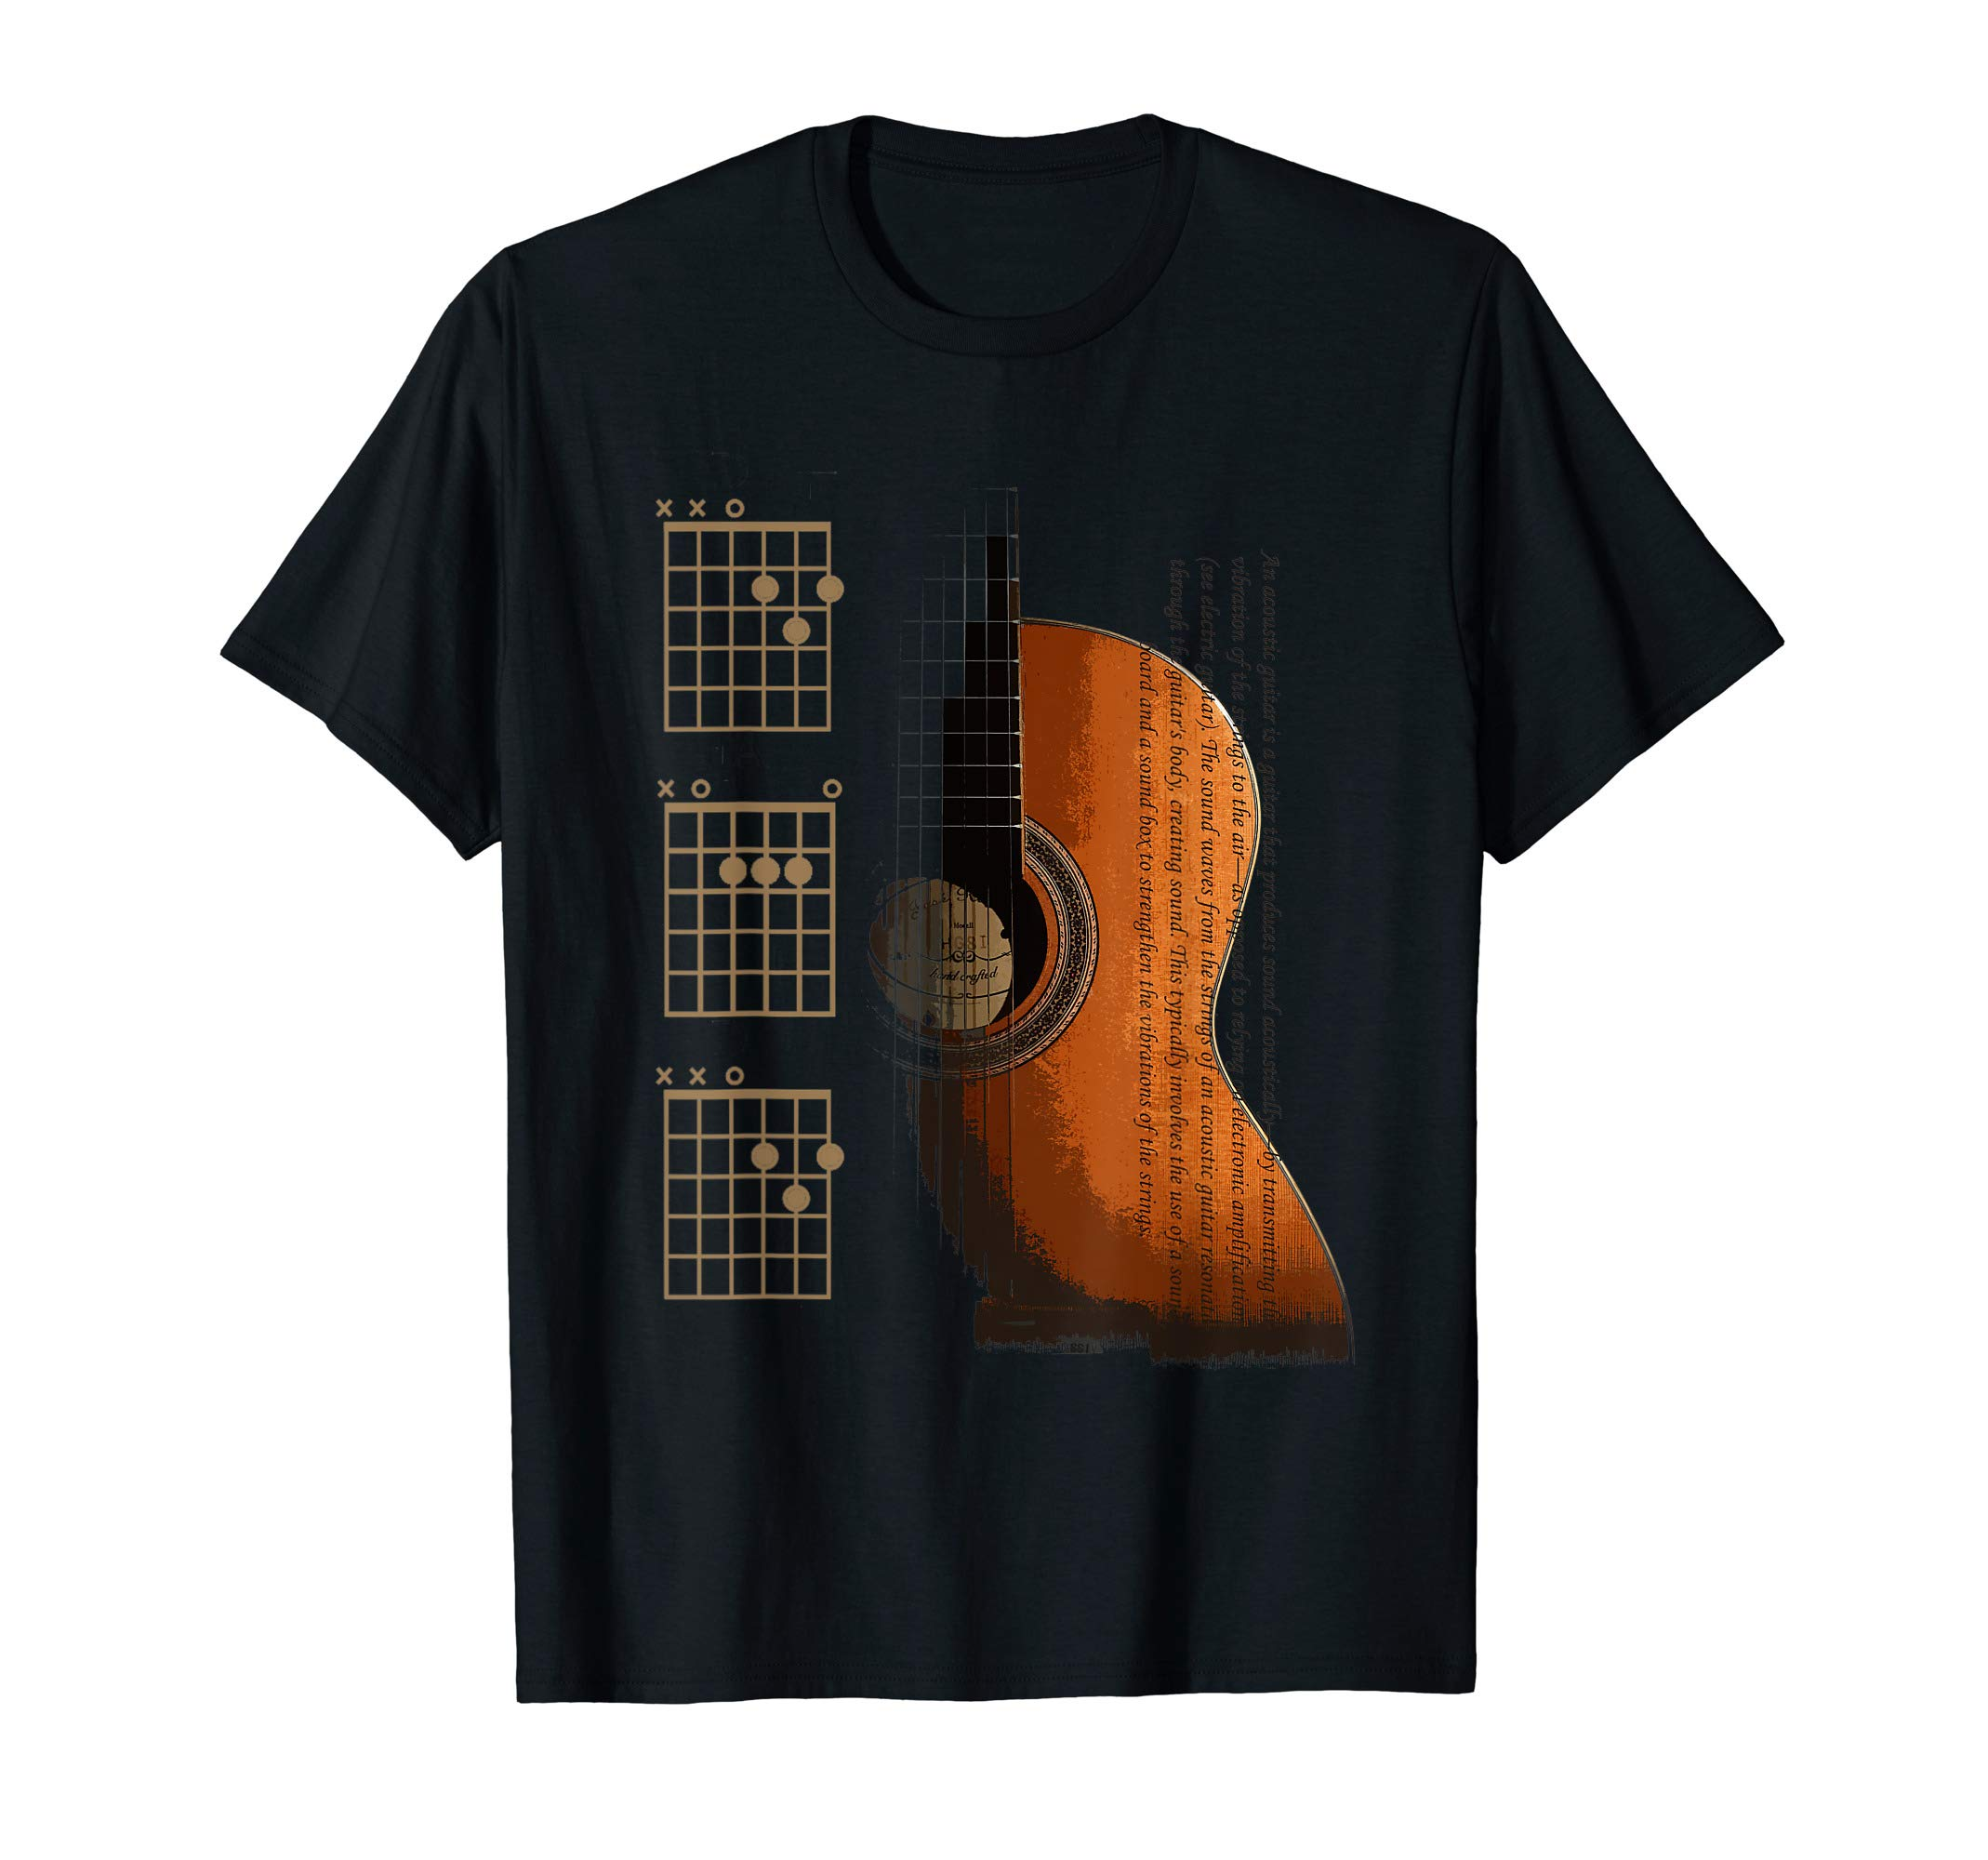 DAD Chords Acoustic Guitar For The Guitarist T-Shirt by The Acoustic Guitarist